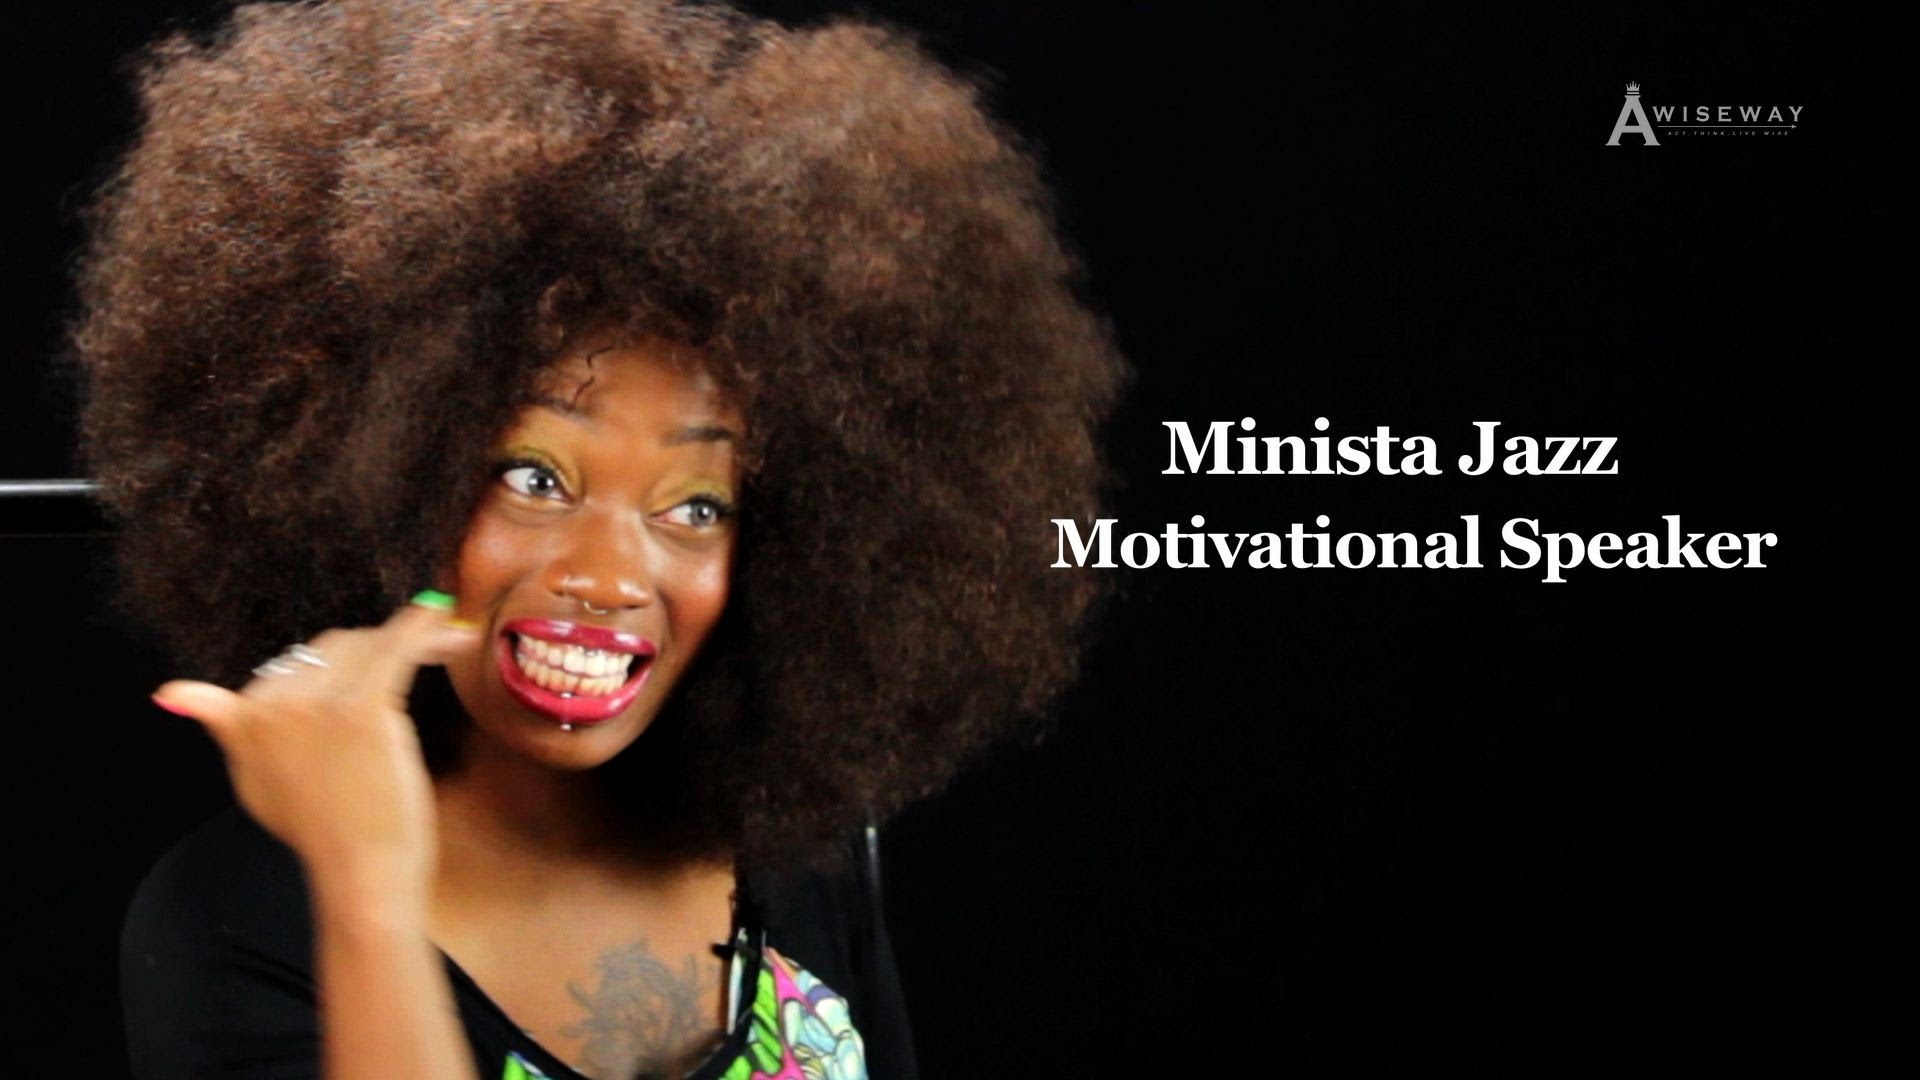 Motivational Speaker Gives Inspiration Because She Loves the Feeling of Being Inspired